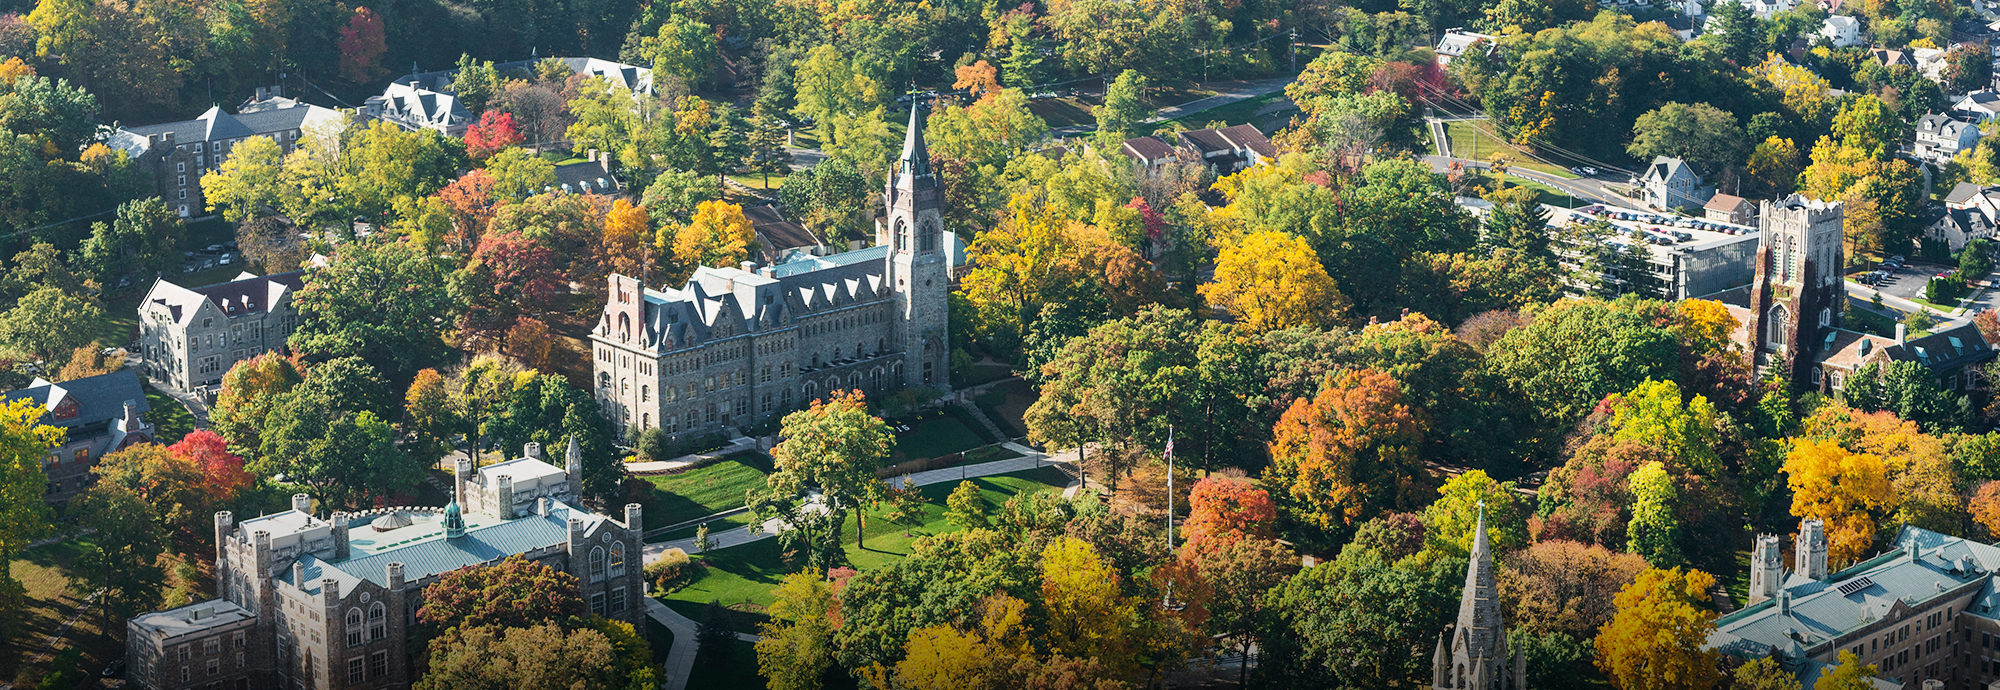 Aerial view of Lehigh campus